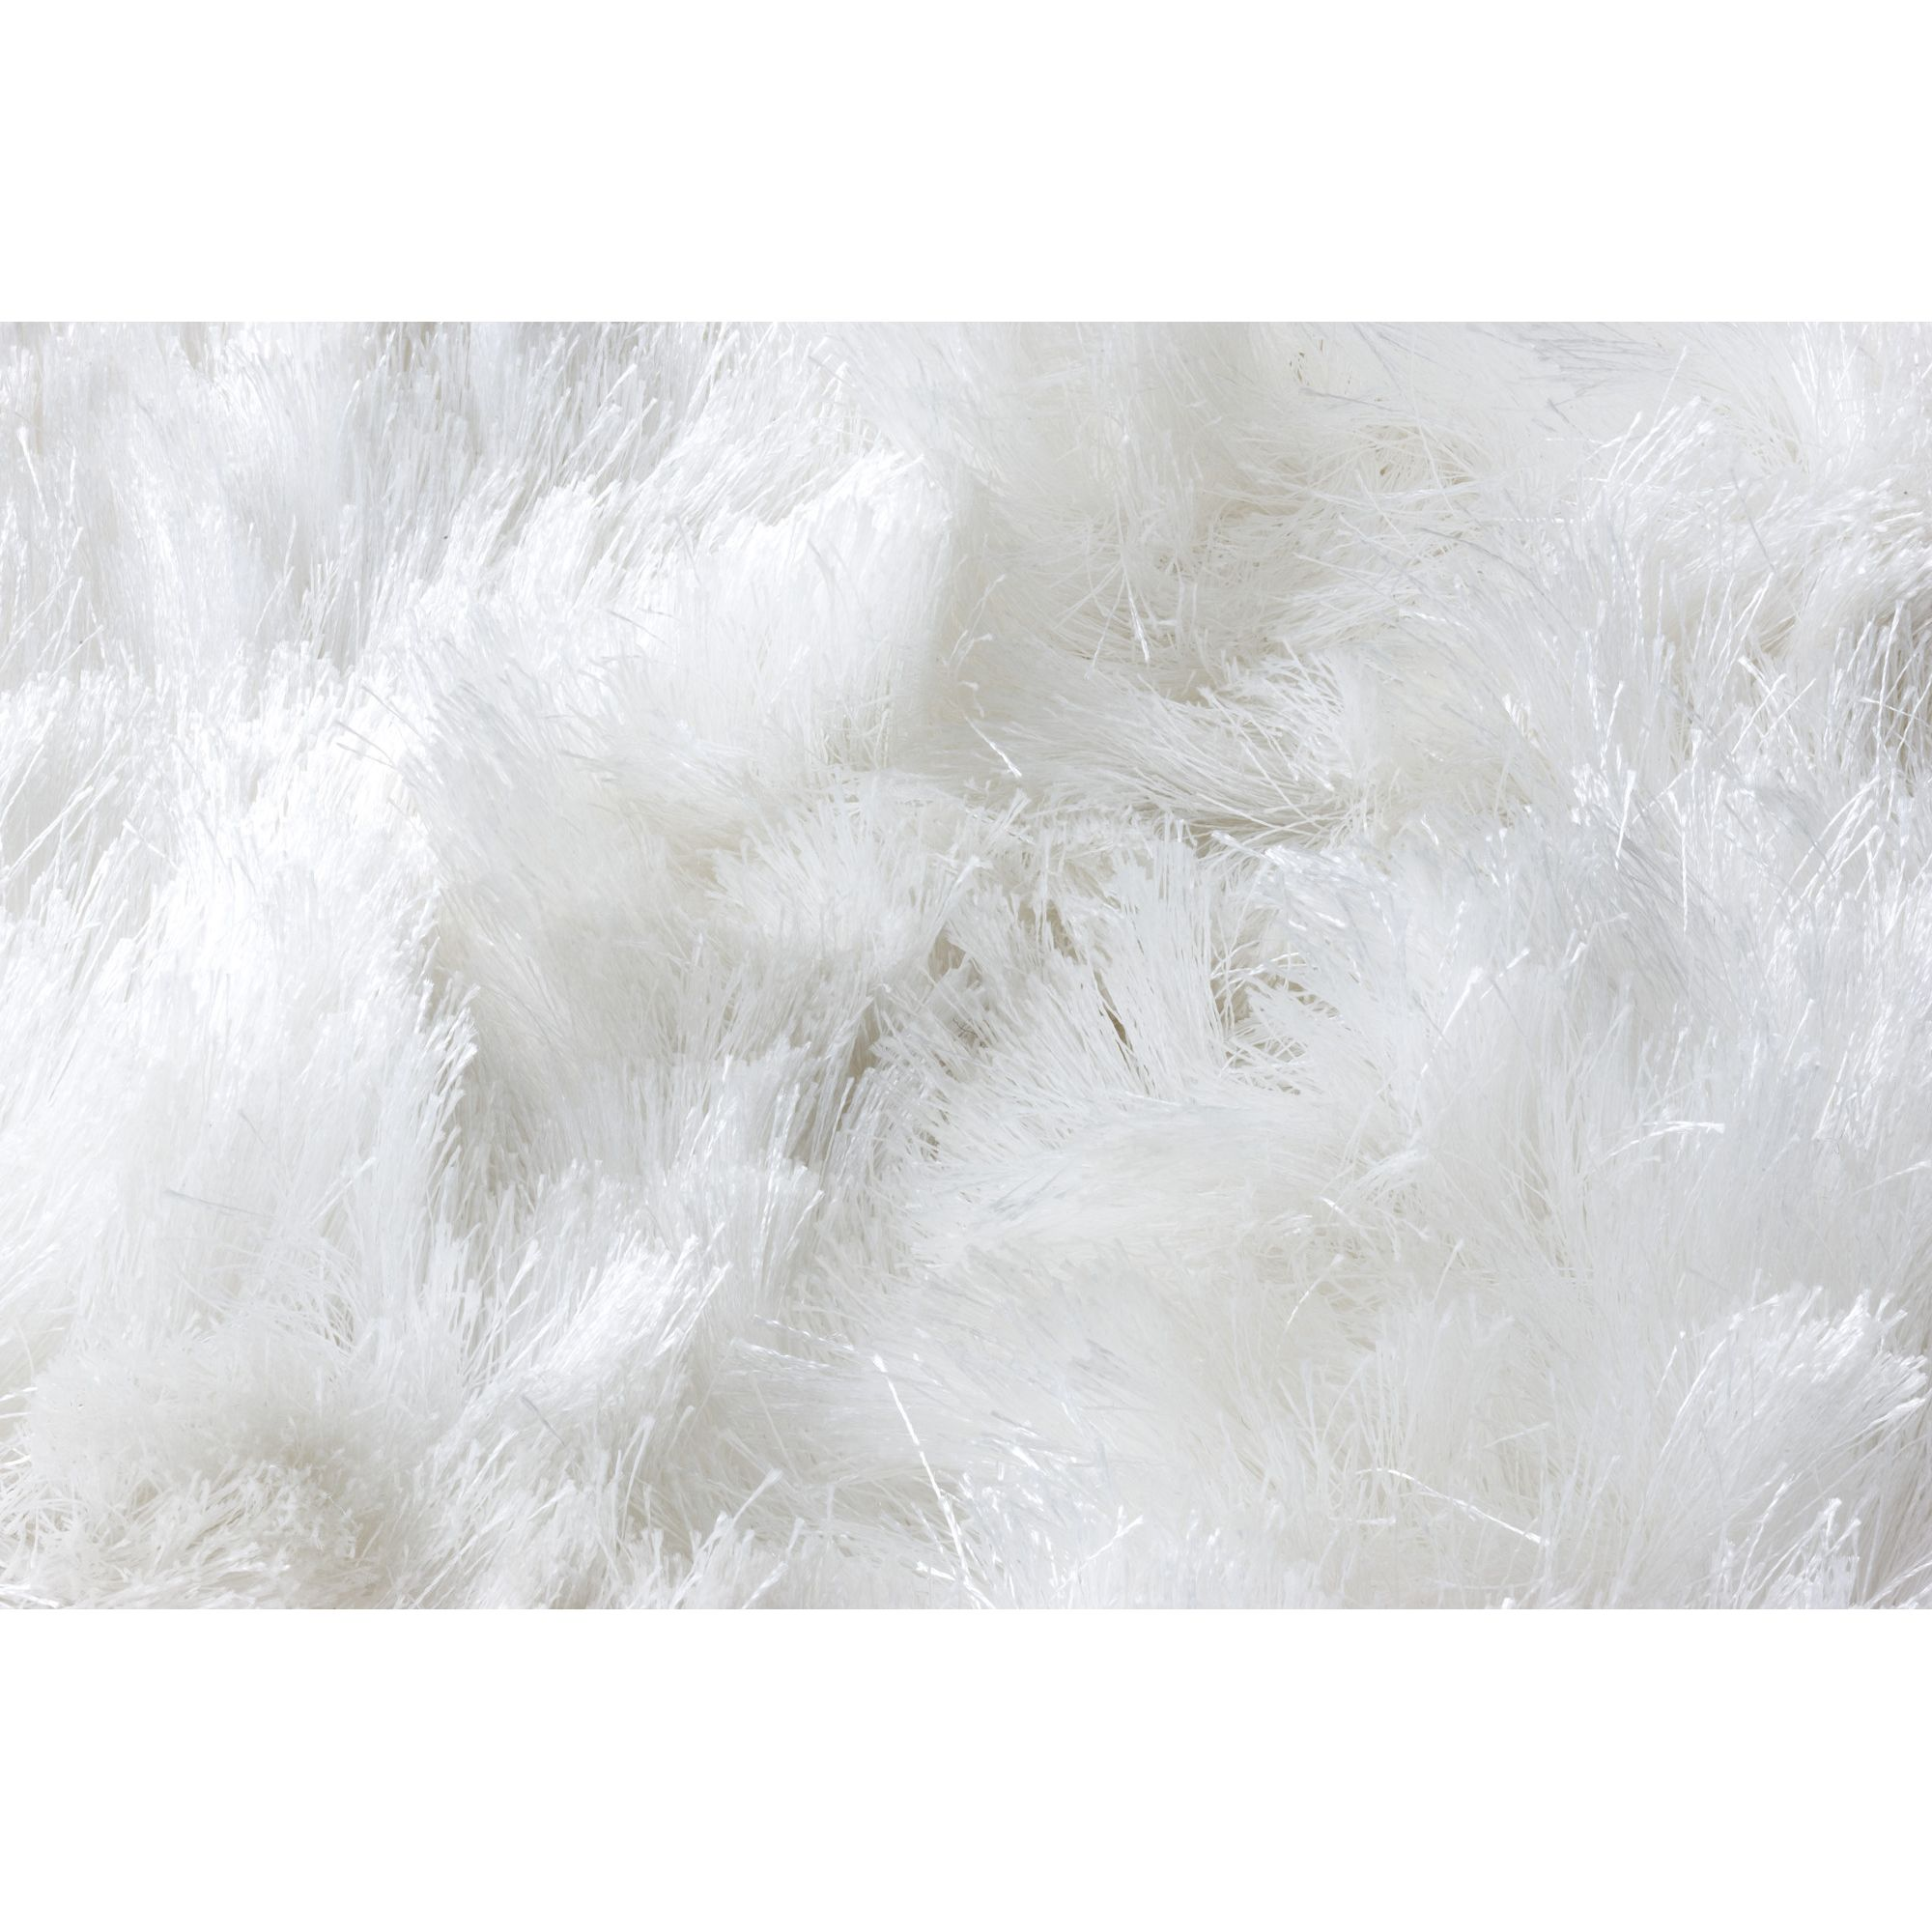 Linie Design Maltino White Shag Rug - 200cm x 140cm at Tesco Direct